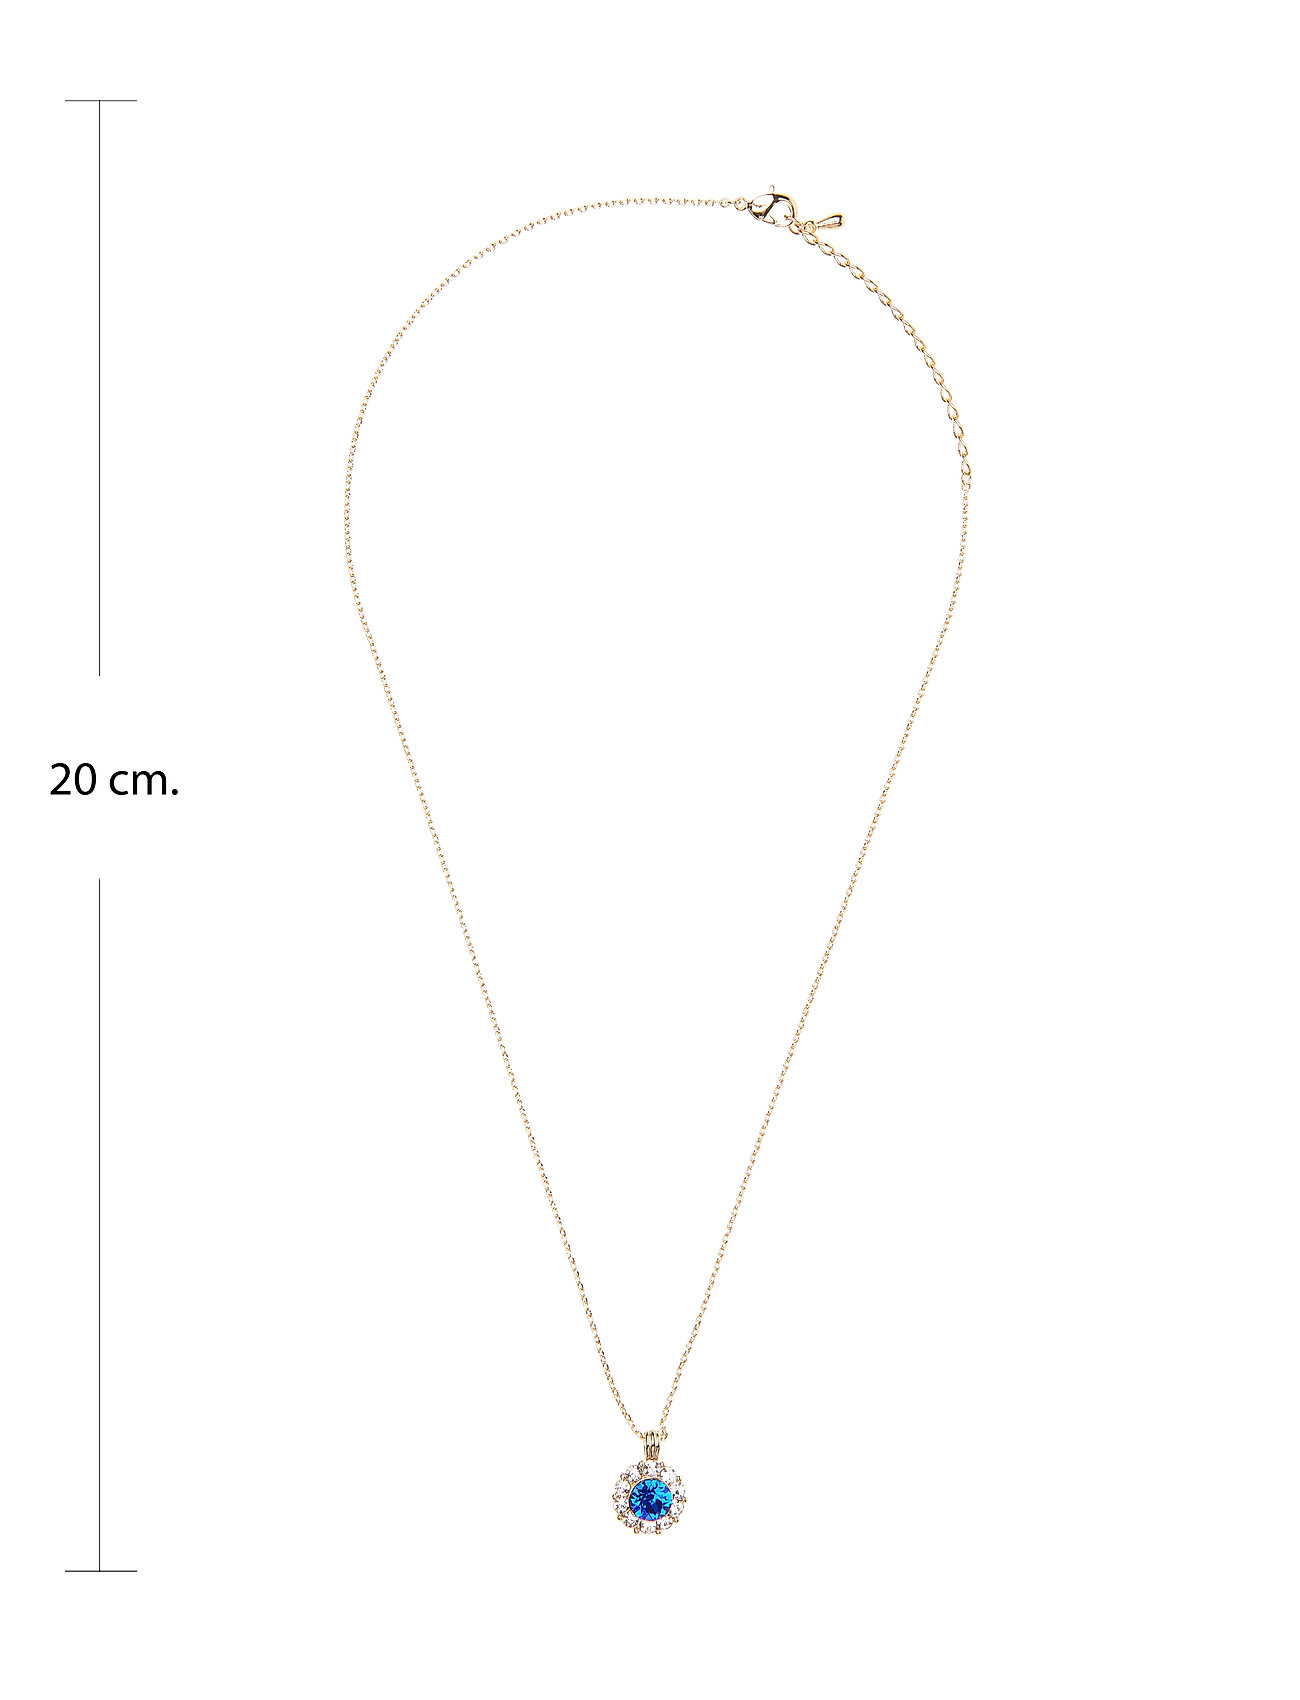 Lily And Rose Sofia Necklace - Majestic Blue Smycken